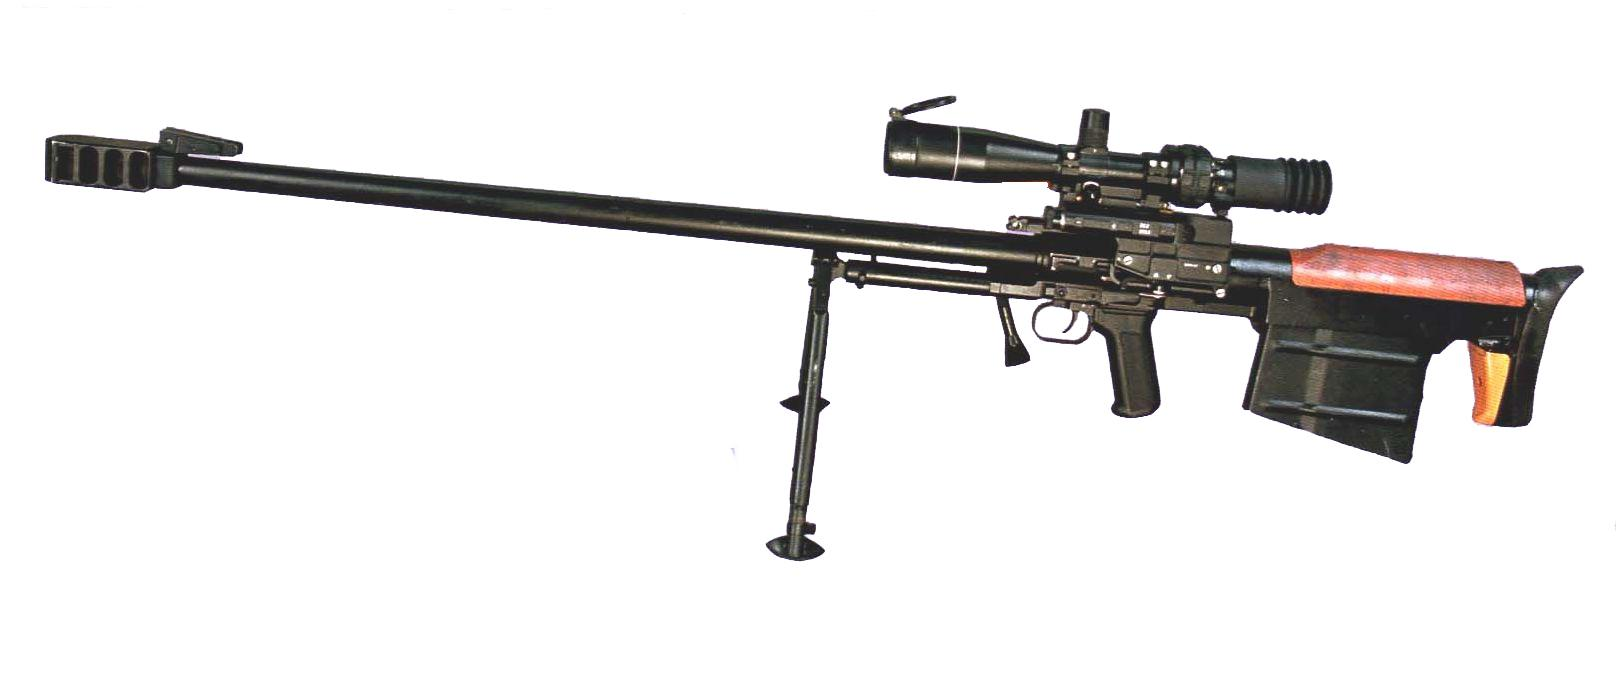 Anti Materiel Rifle ksvk 12.7 - wikipedia